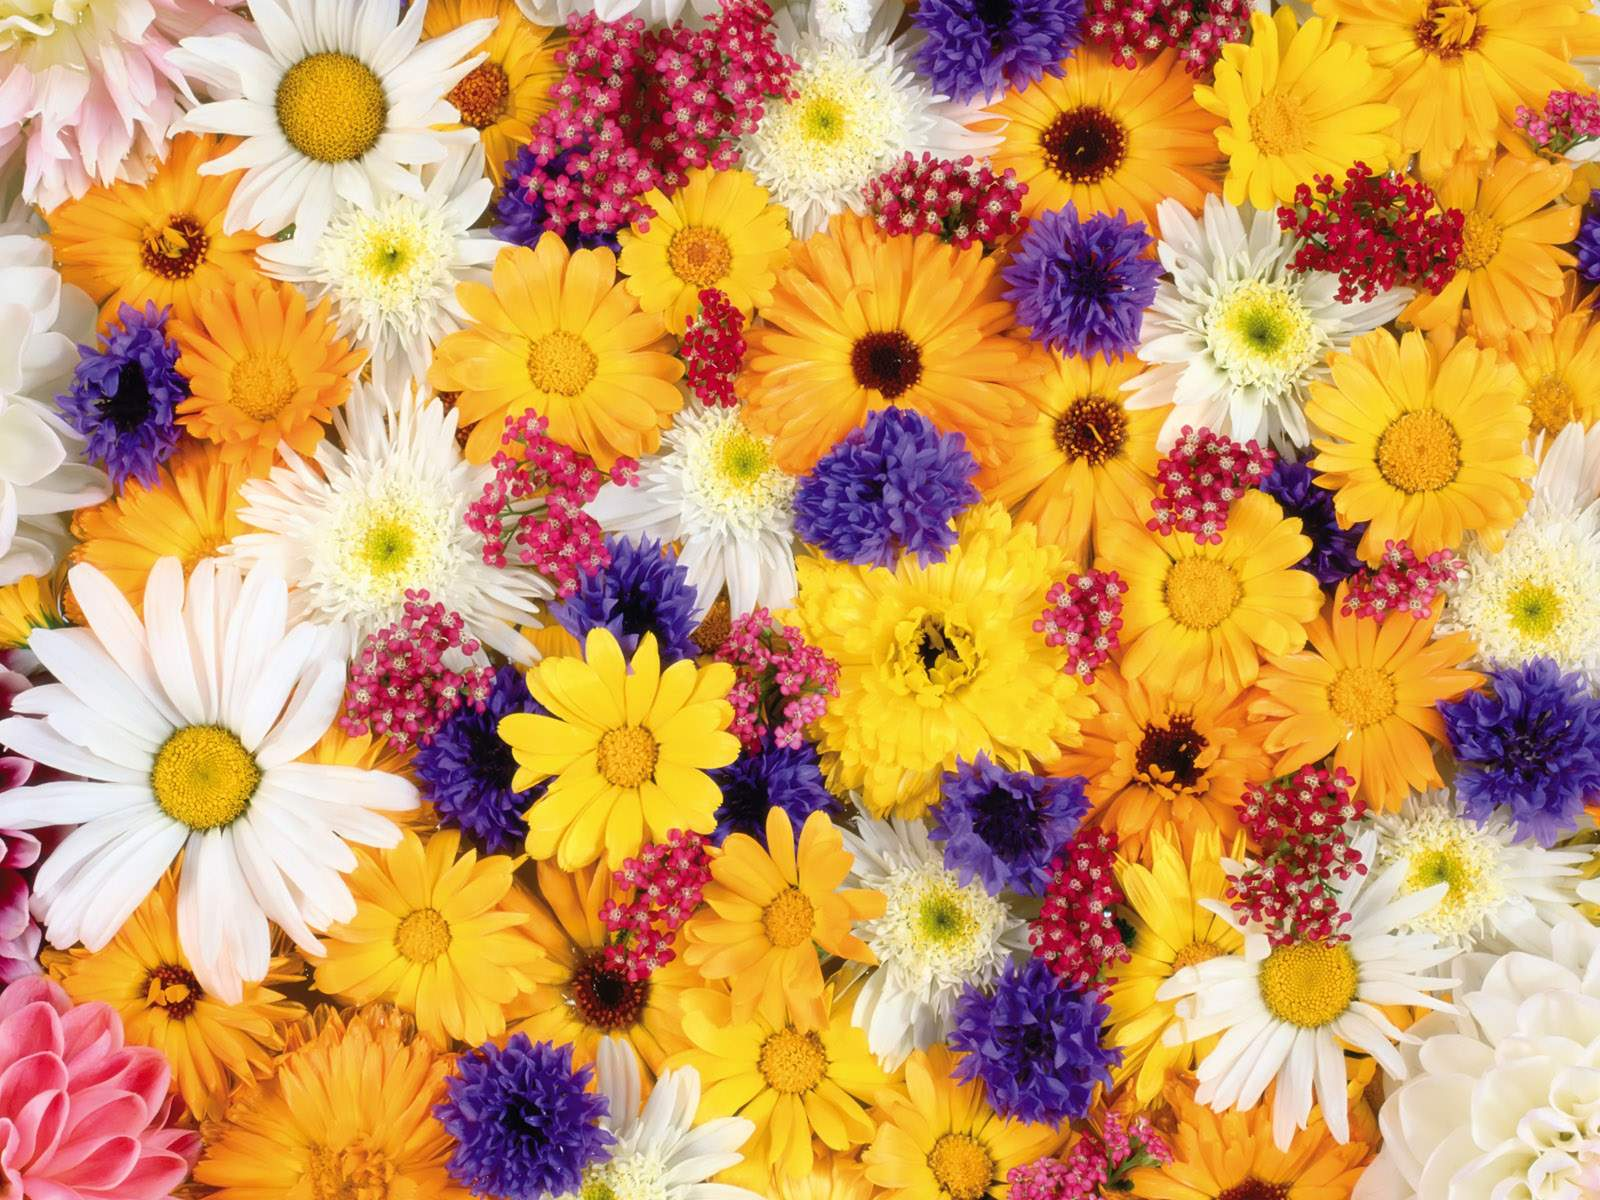 Picture of colorful flowers clipart stock Colorful flowers images - ClipartFest clipart stock